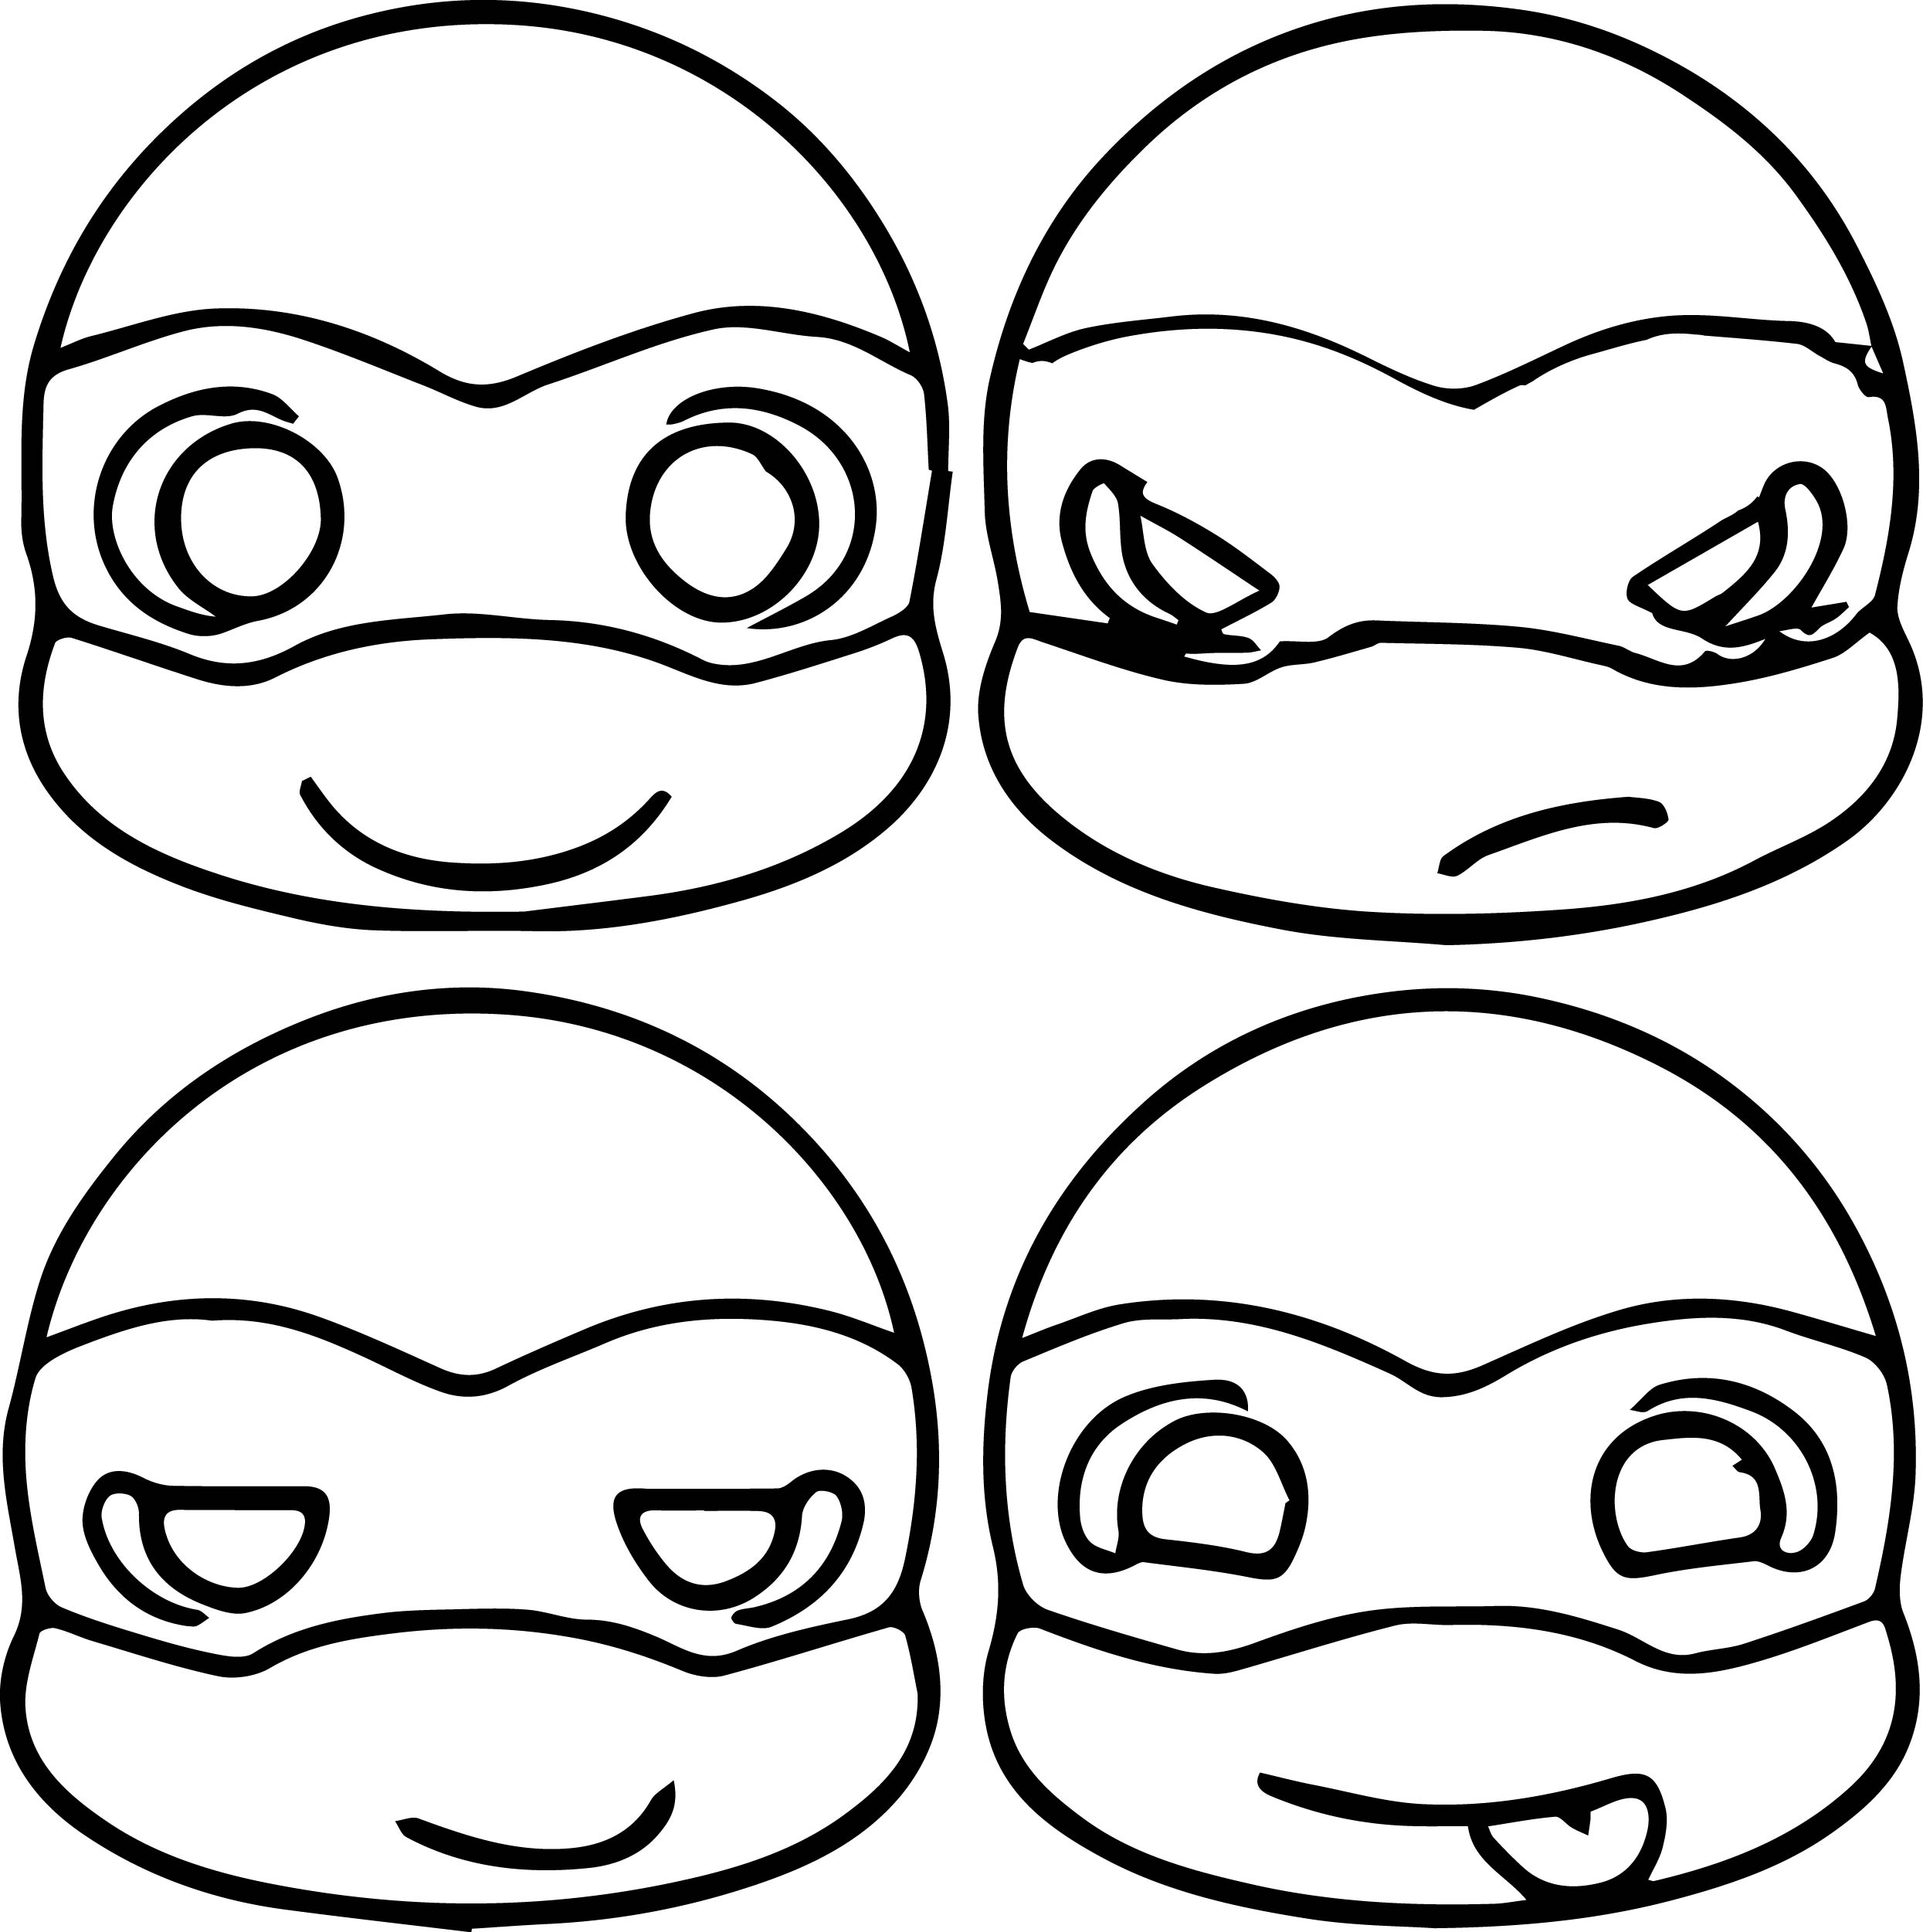 2490x2502 Easy Teenage Mutant Ninja Turtles Drawings Cute Teenage Mutant